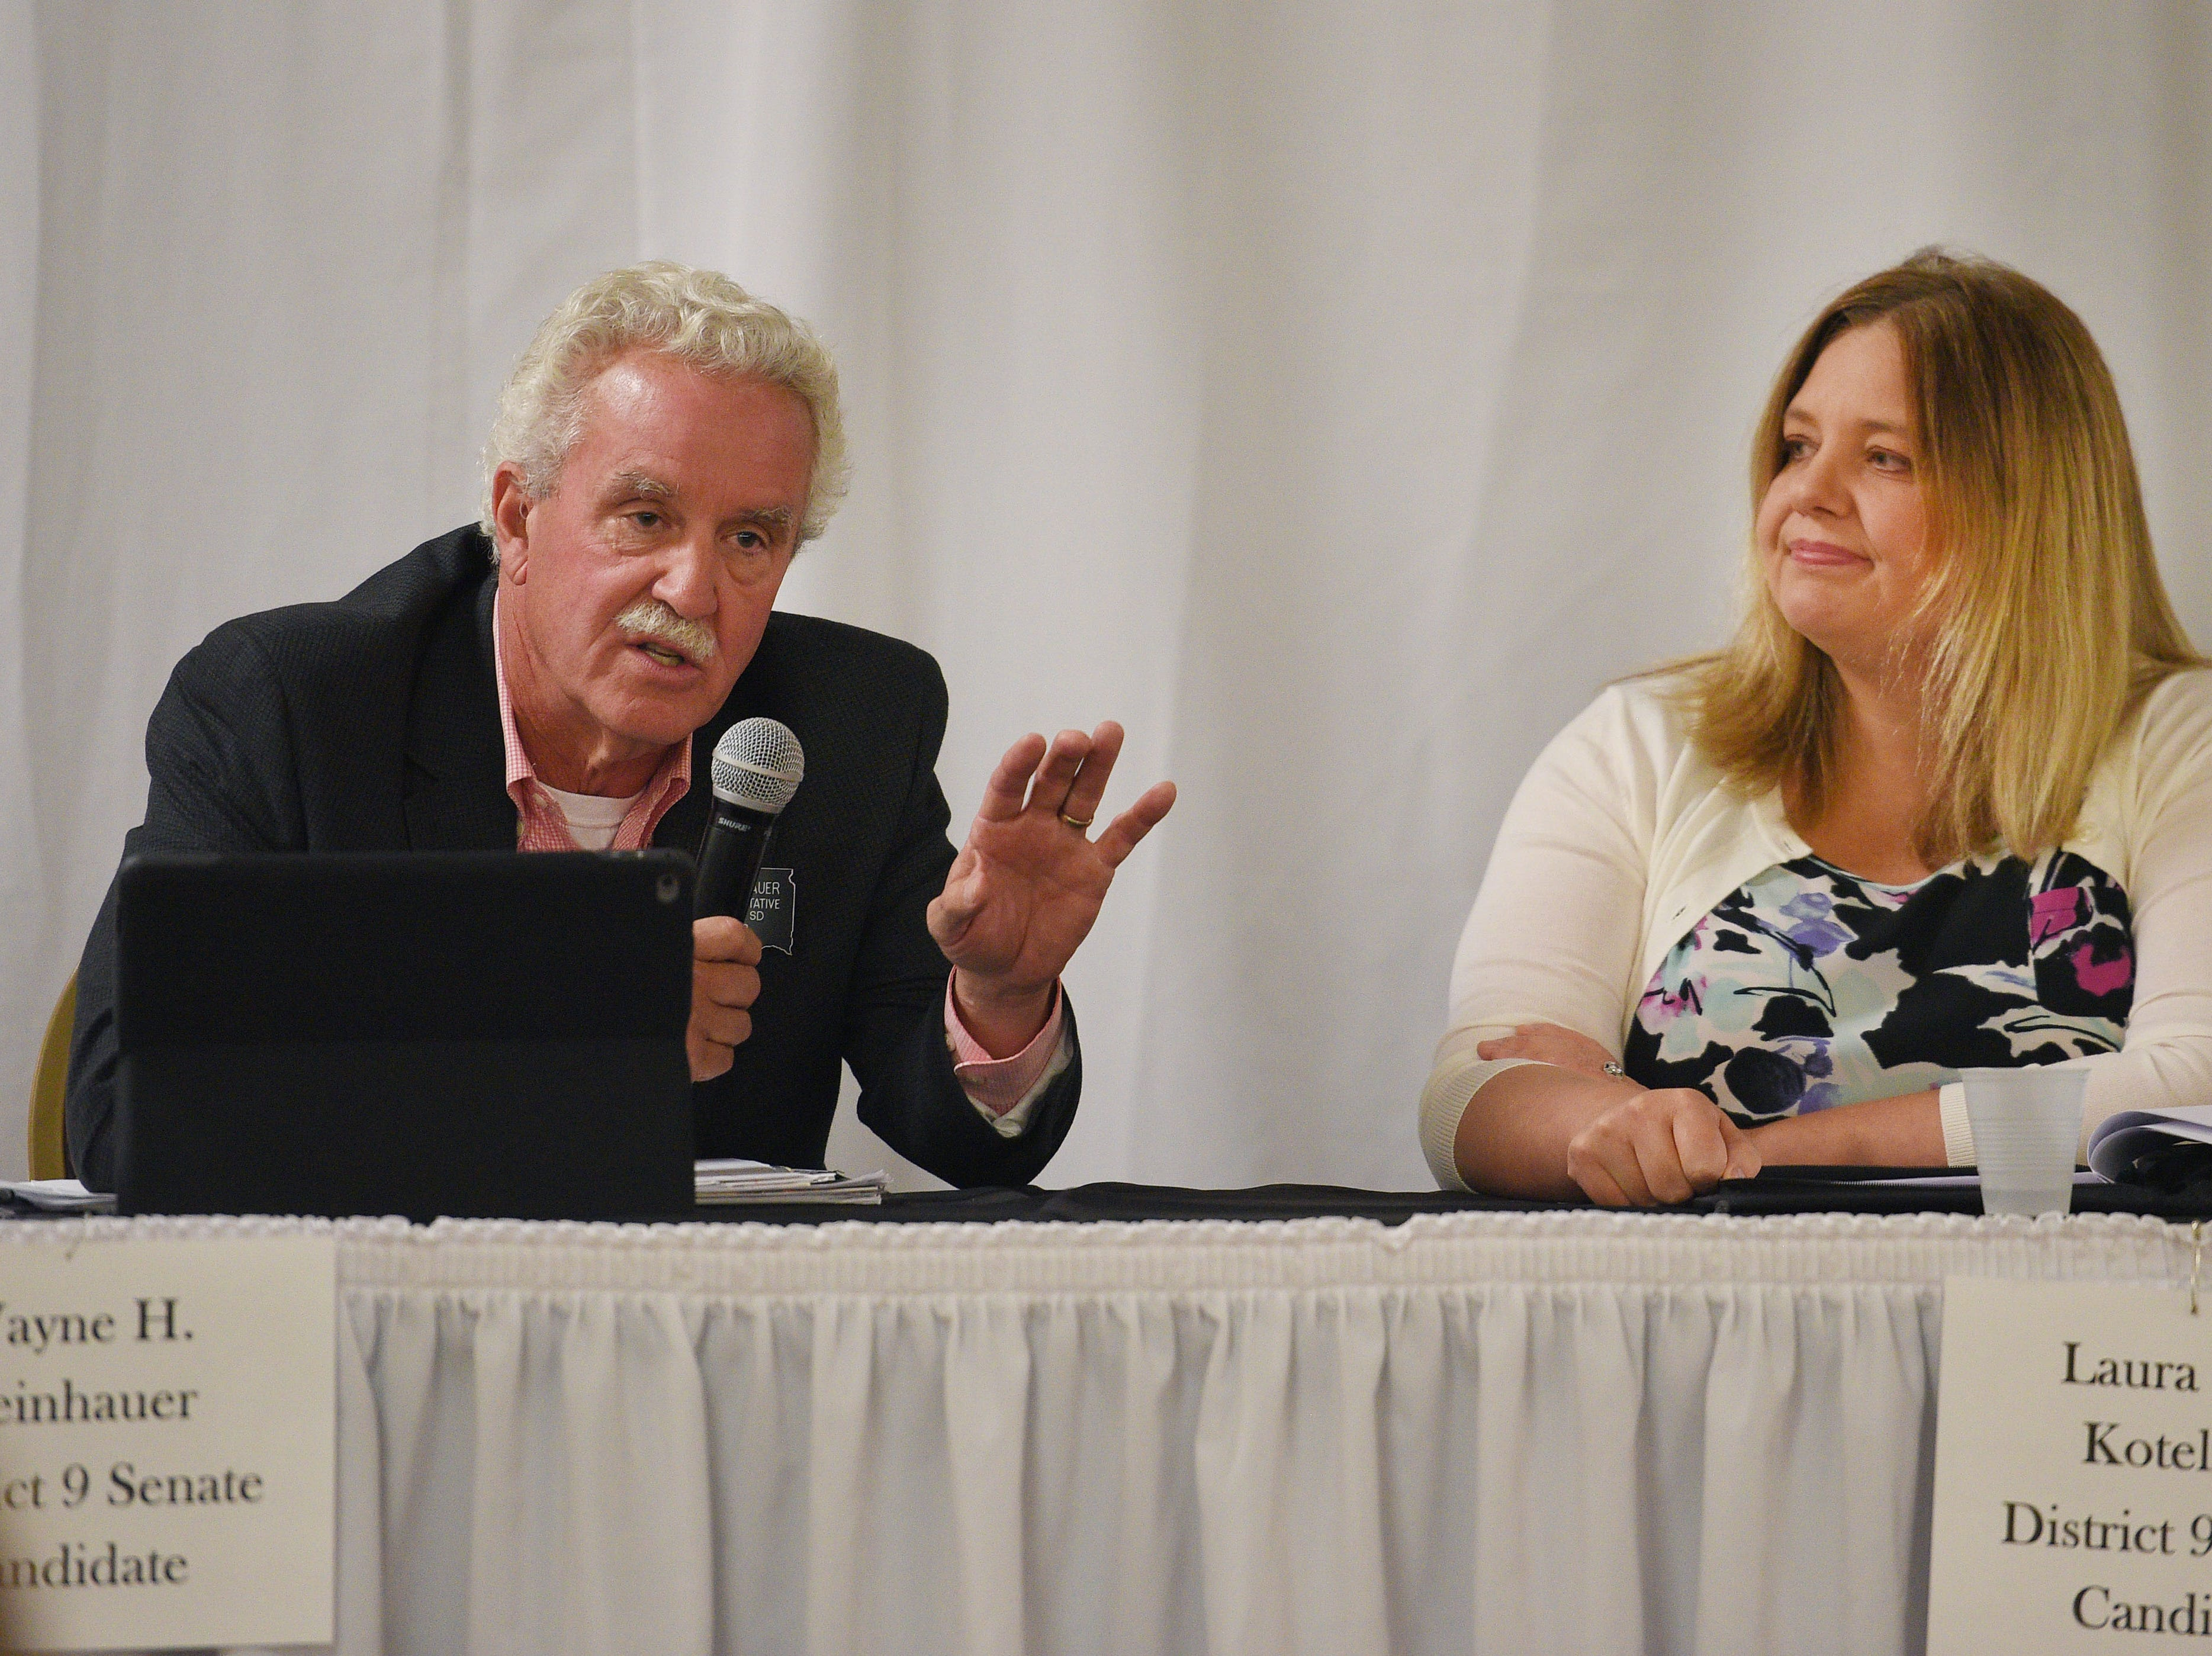 Legislative candidates Wayne Steinhauer (R) and Laura Swier Kotelman (D) answers questions from constituents Thursday, Sept. 27, at Dakota Plains Event Center in Hartford. Candidates discussed Initiated Measure 22, health care and spending priorities.